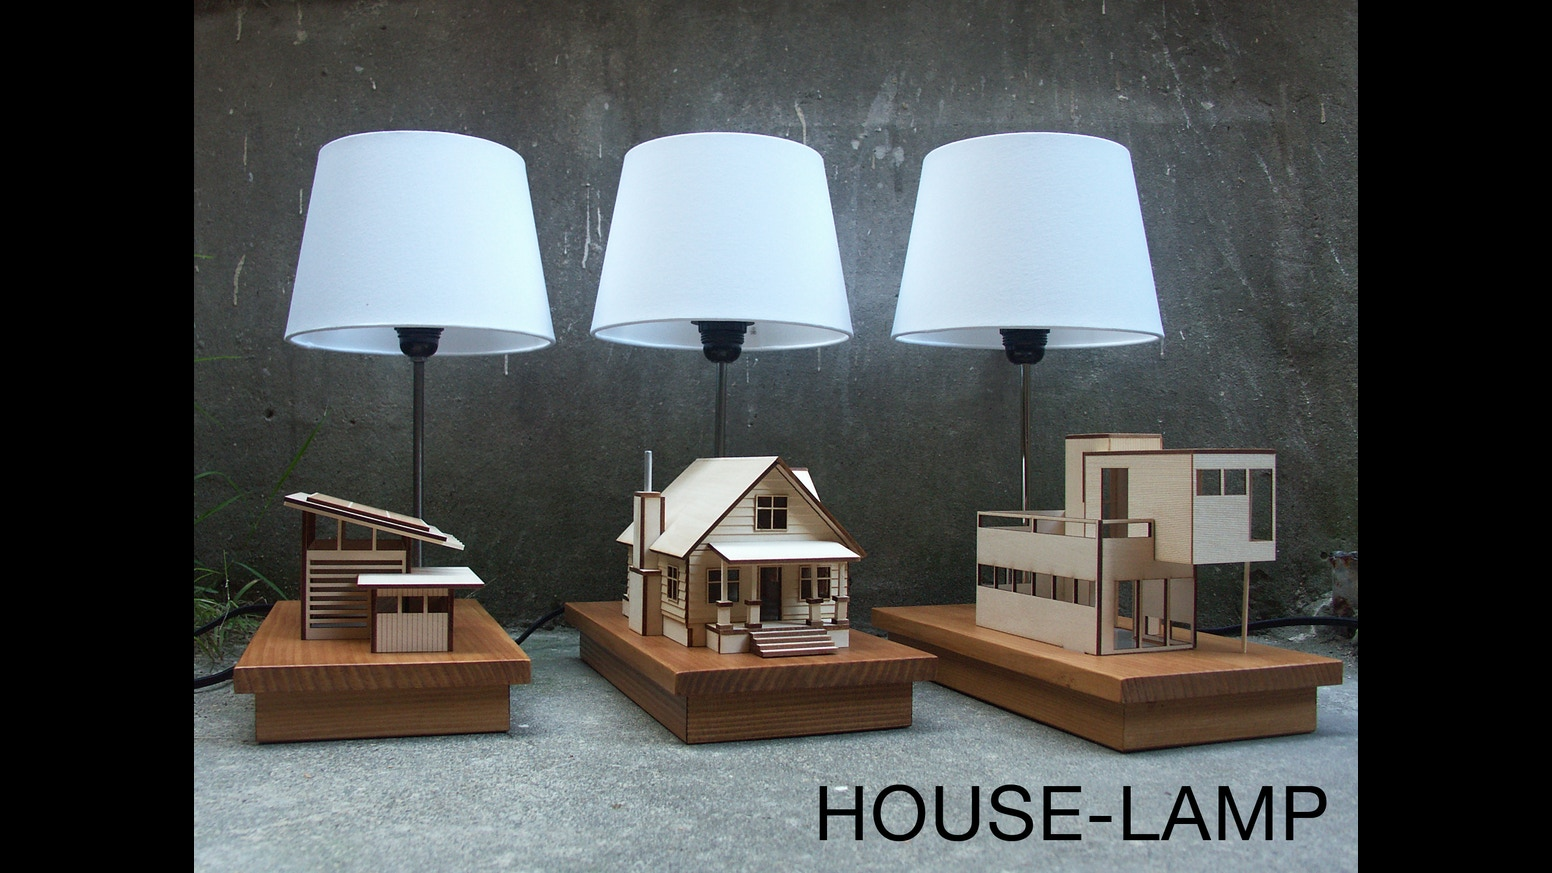 House Lamp By Lauren Daley Kickstarter